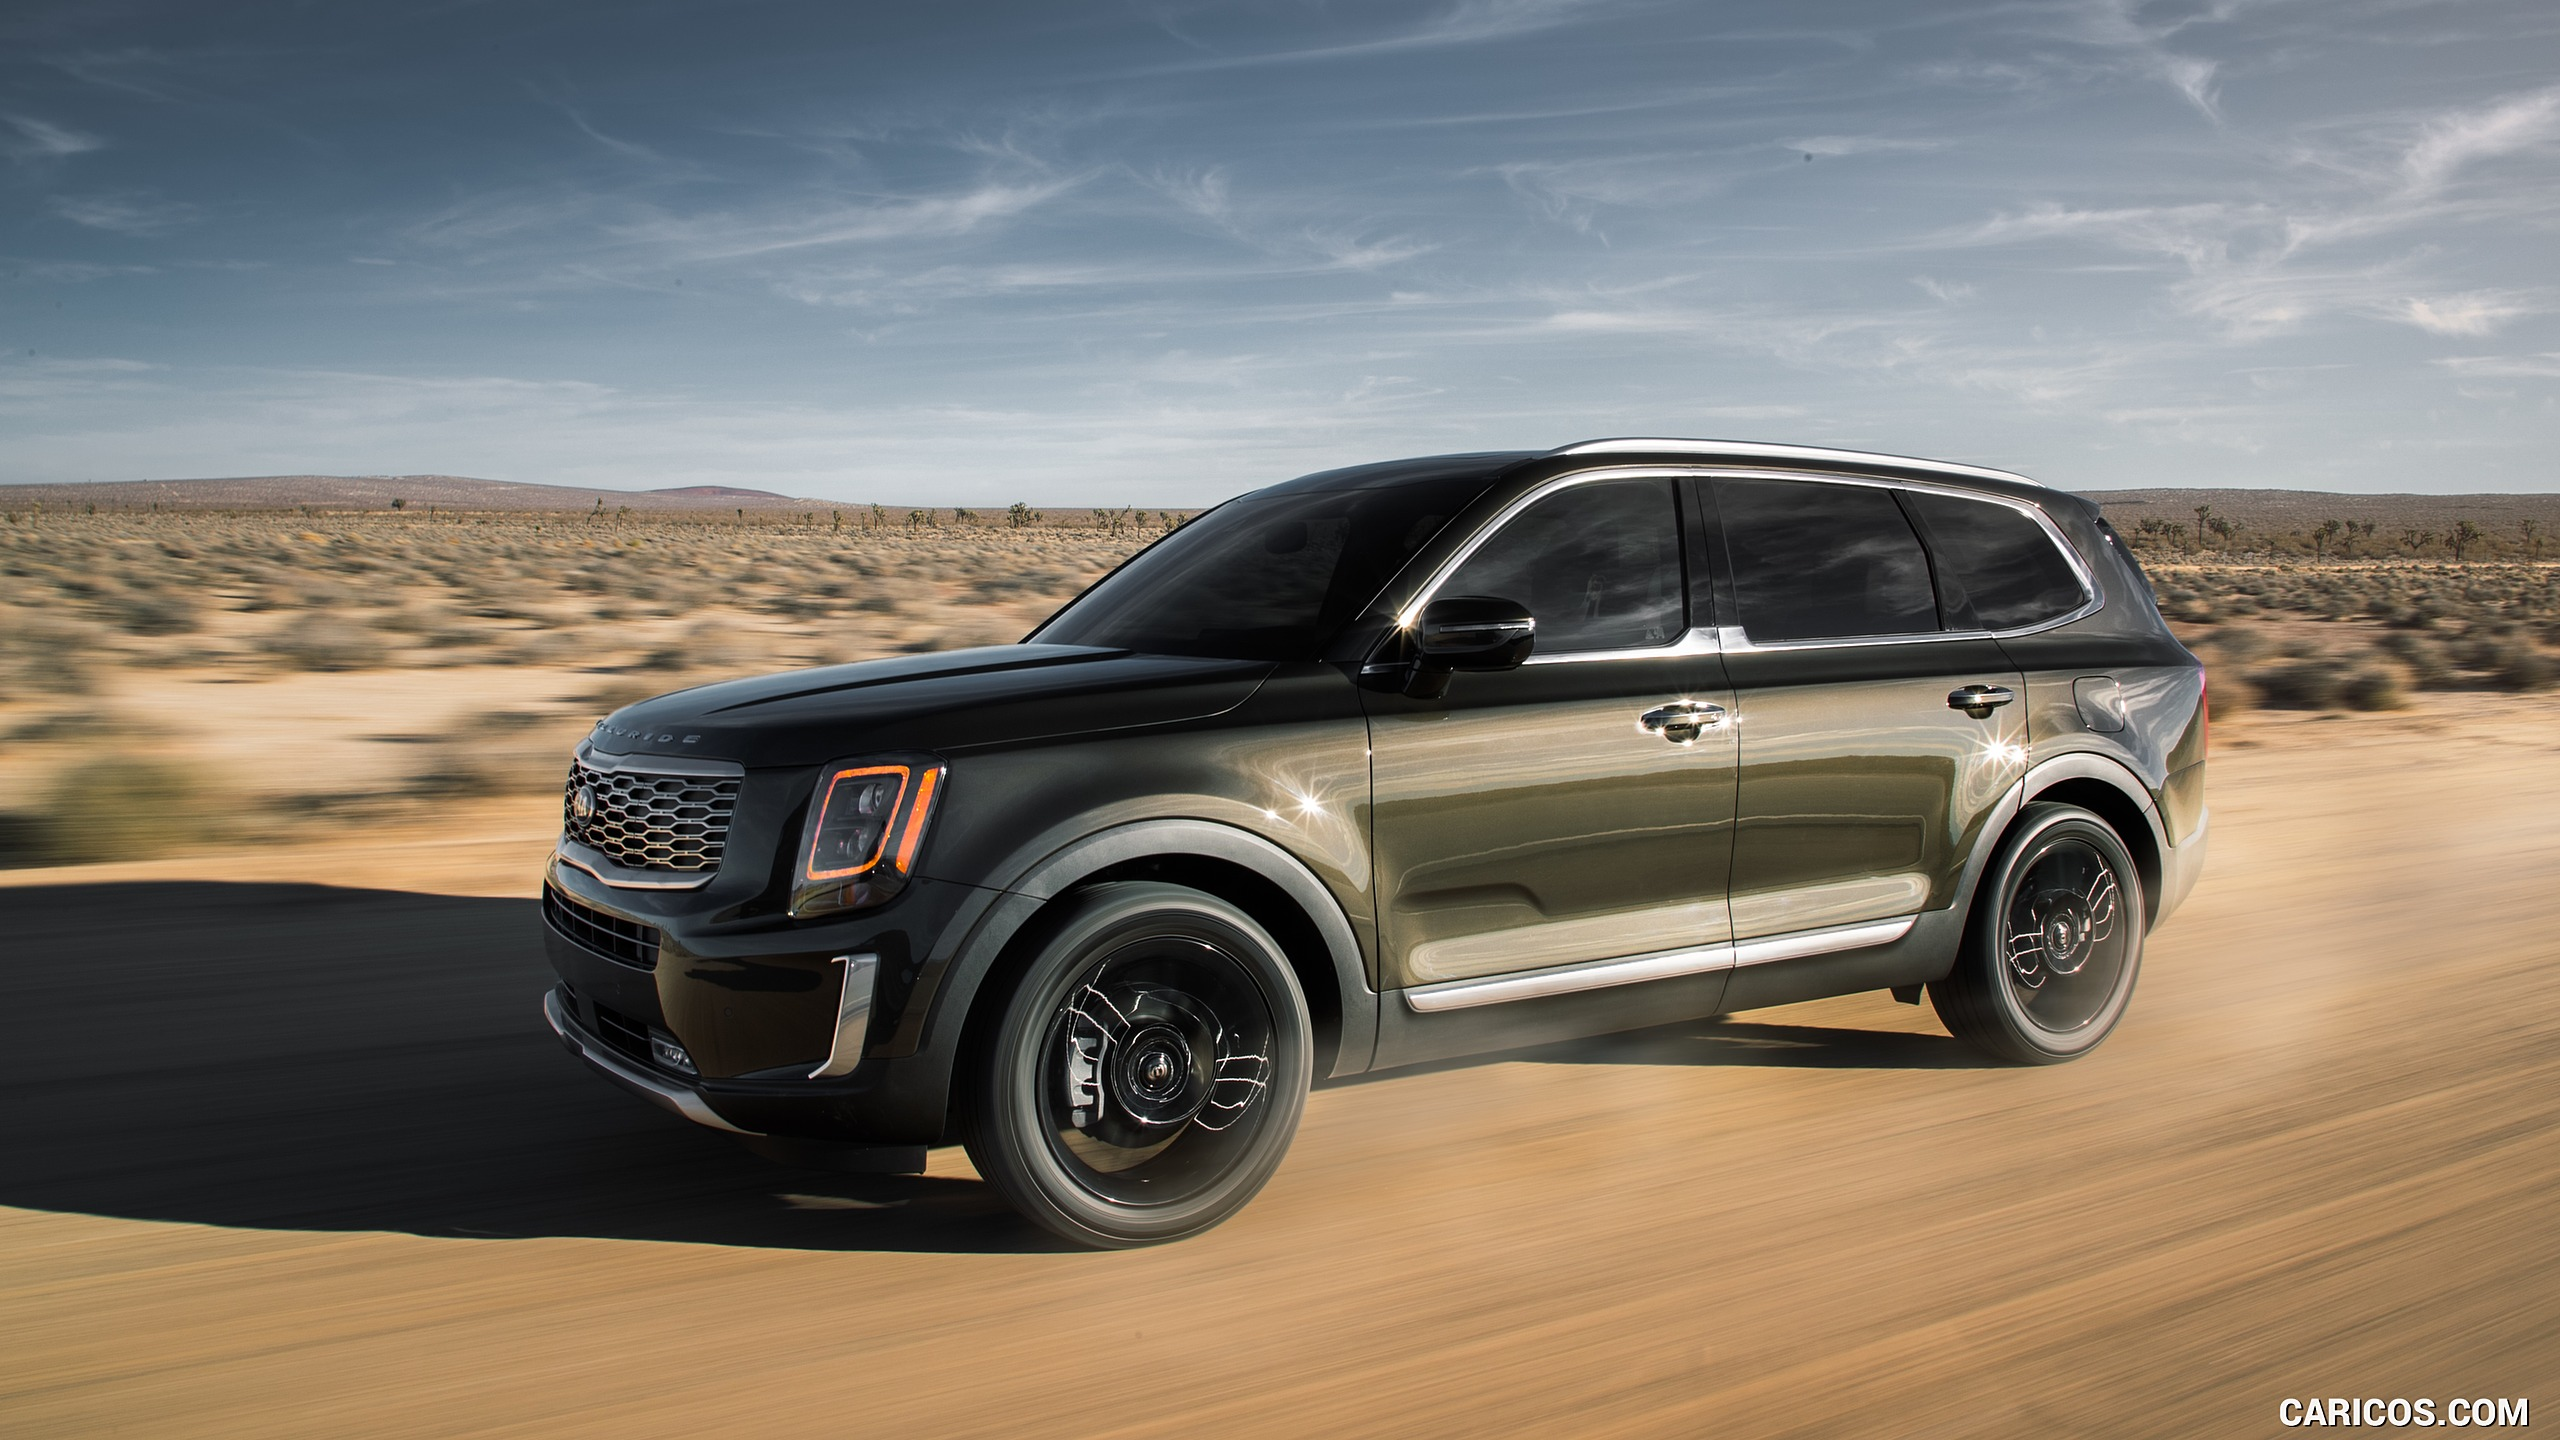 2020 Kia Telluride   Front Three Quarter HD Wallpaper 1 2560x1440